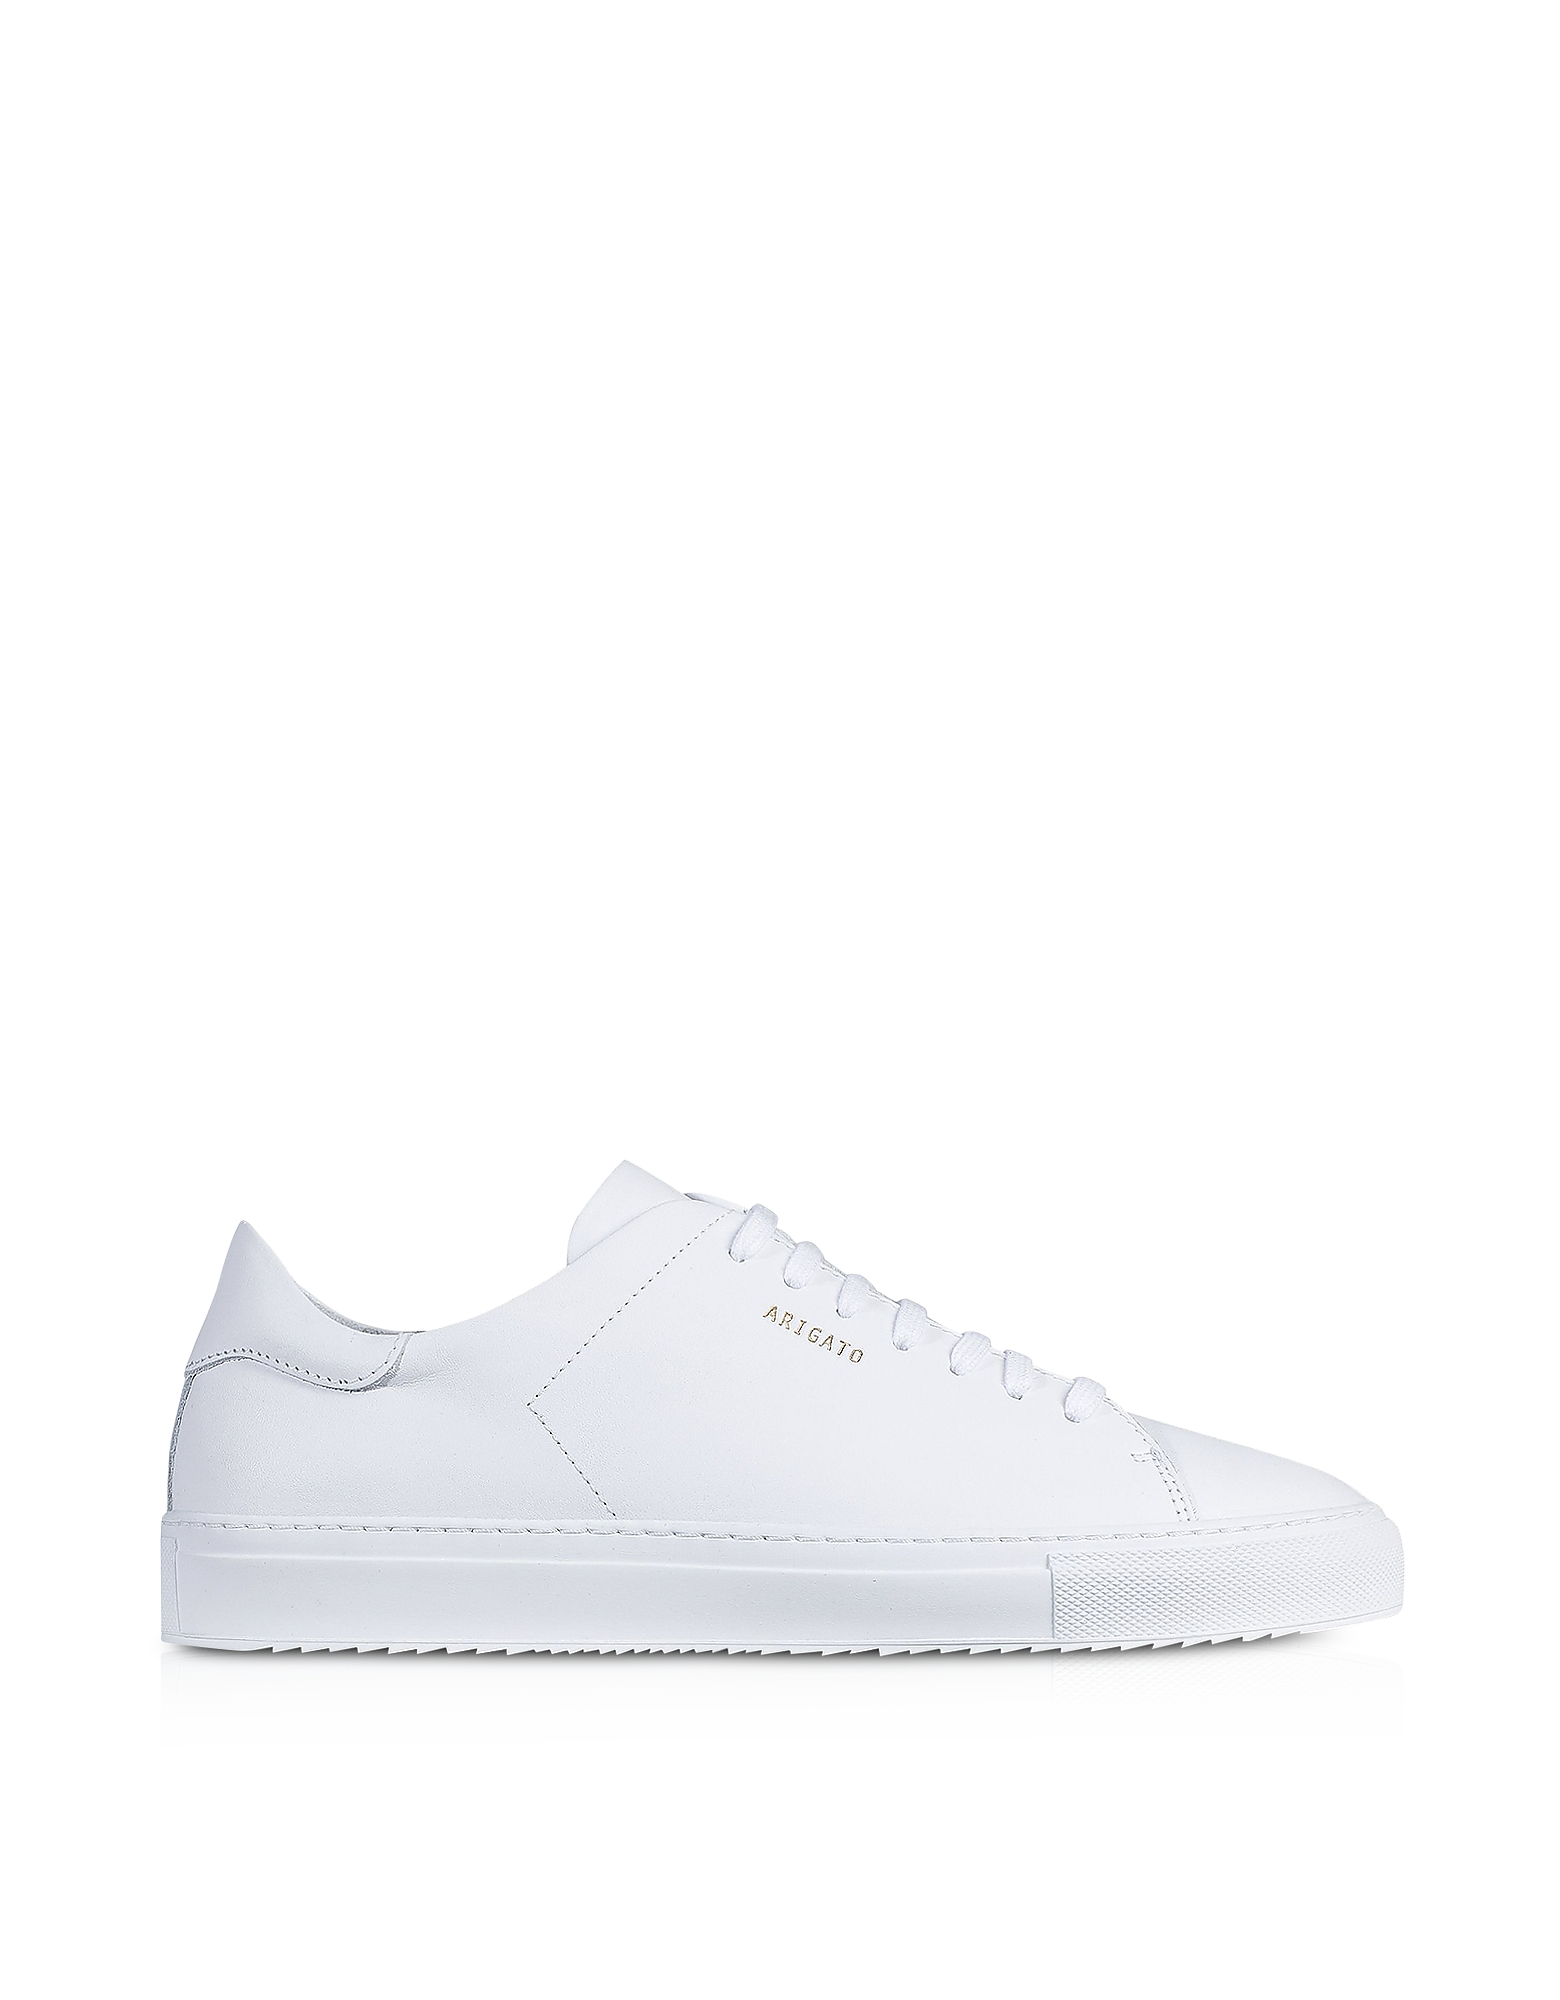 Clean 90 White Leather Women's Sneakers